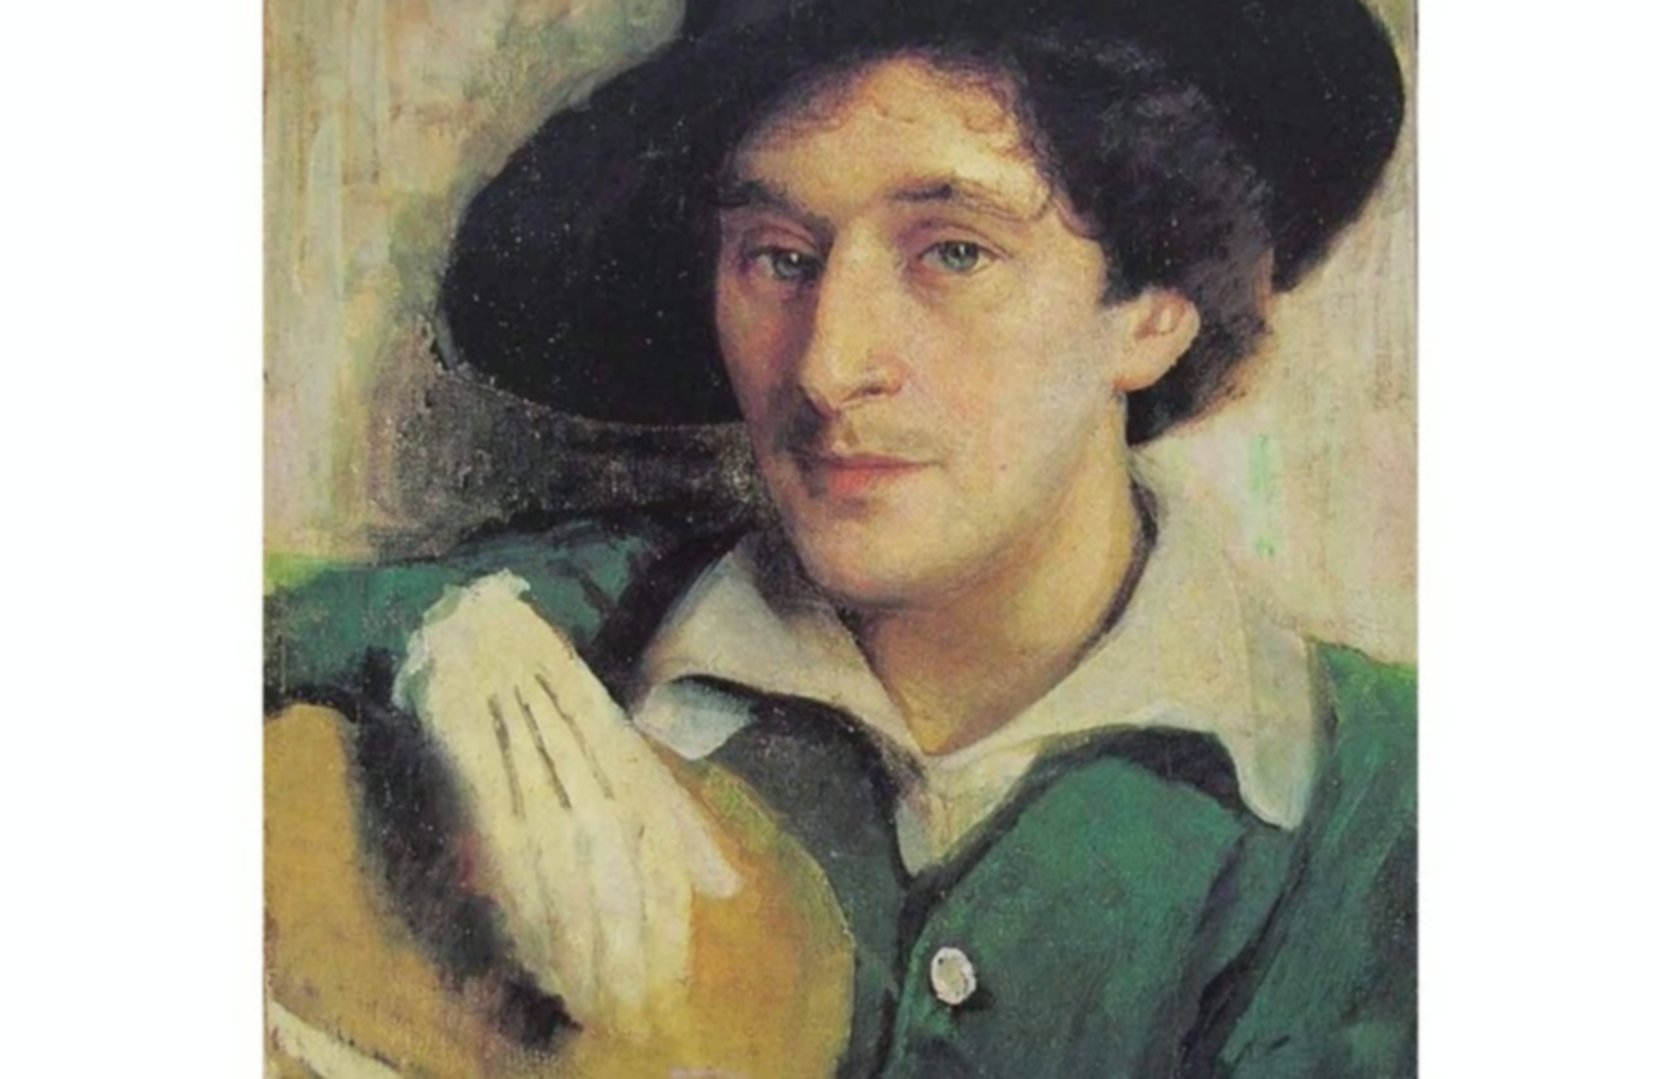 Marc chagall le surr alisme pearltrees for Biographie de marc chagall